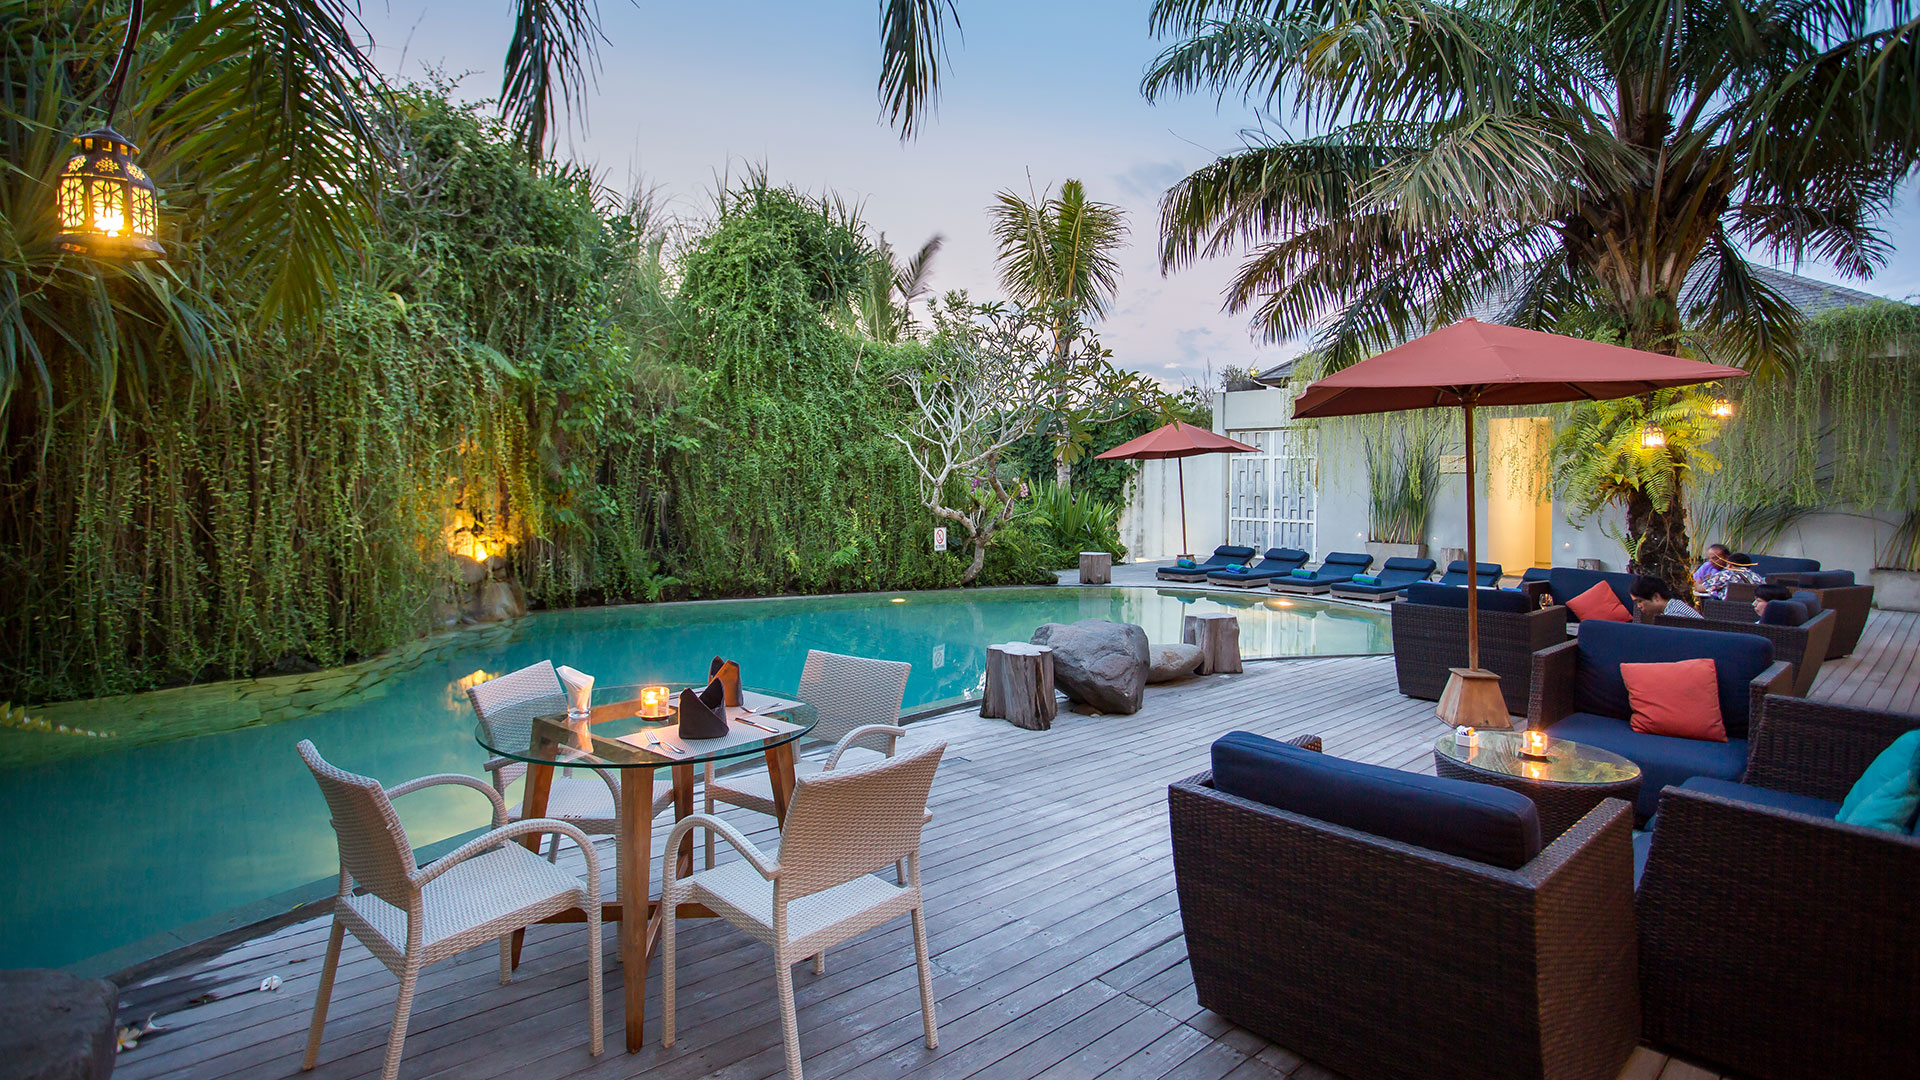 A complex of luxury private villa located in the prime location of Seminyak Bali. This villa has very nice restaurant and bar...